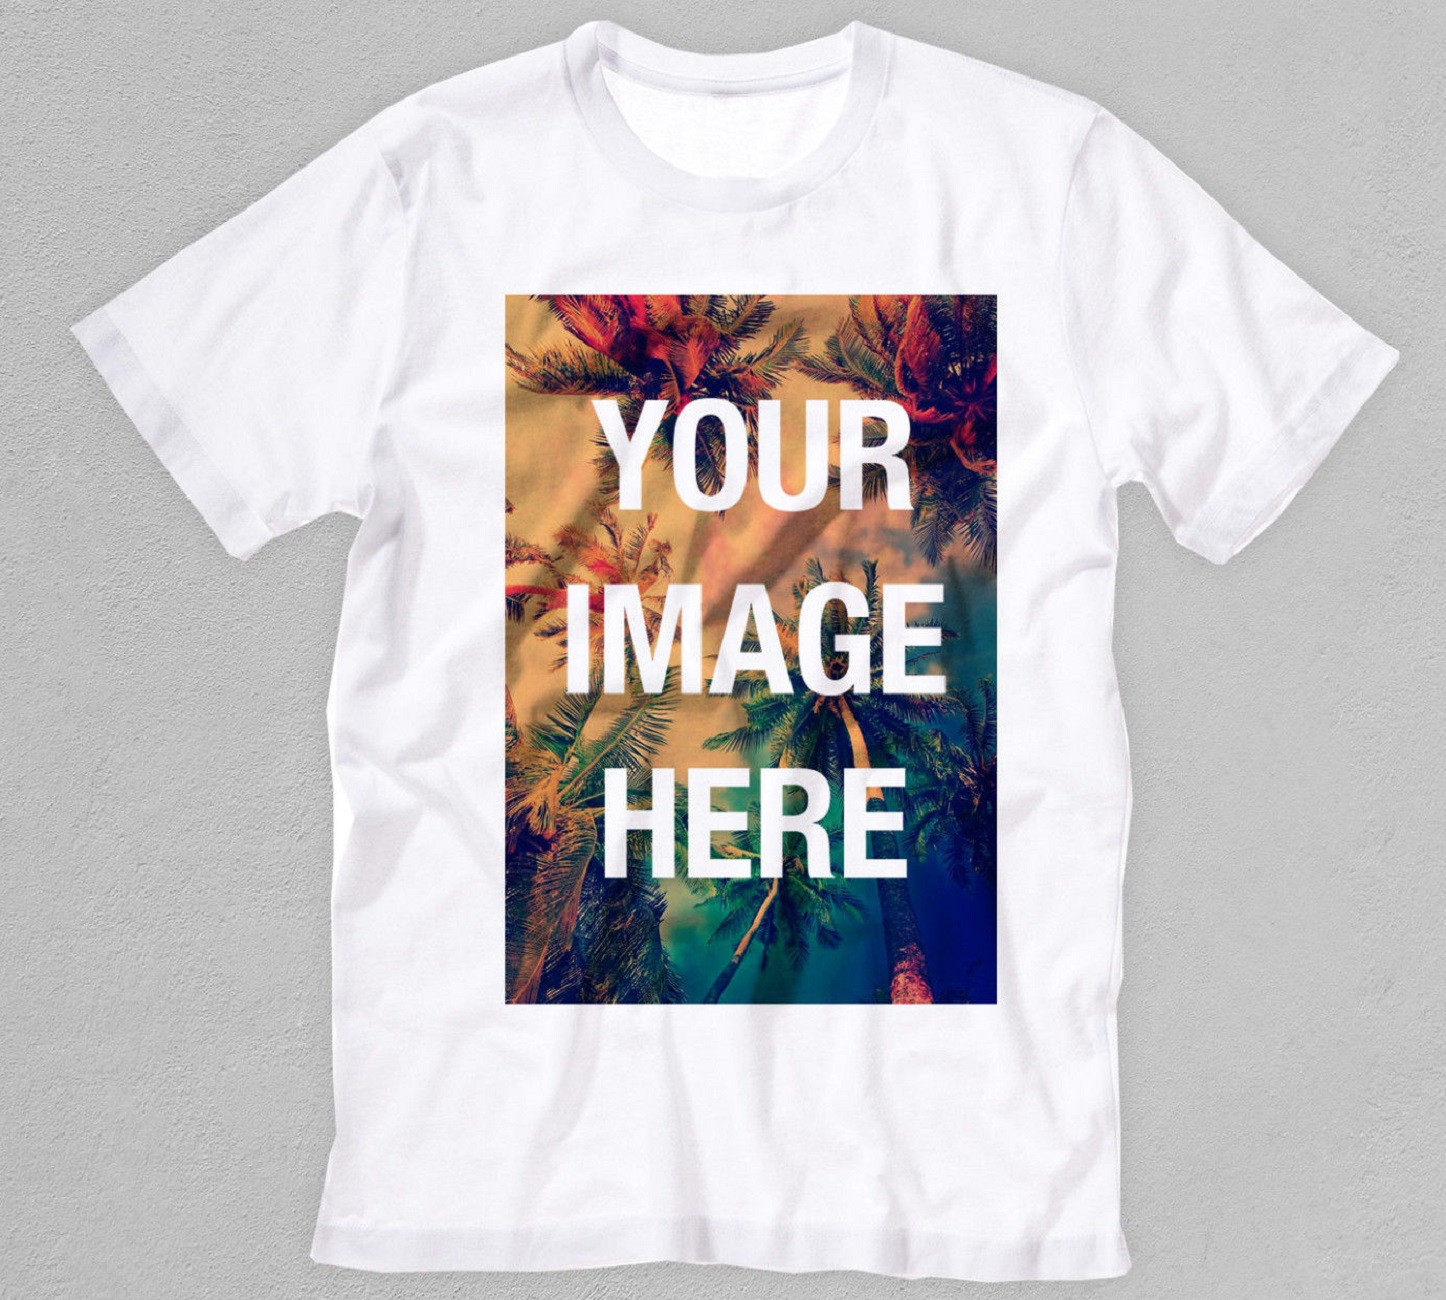 9d1d9939e Personalized T Shirts Uk - DREAMWORKS